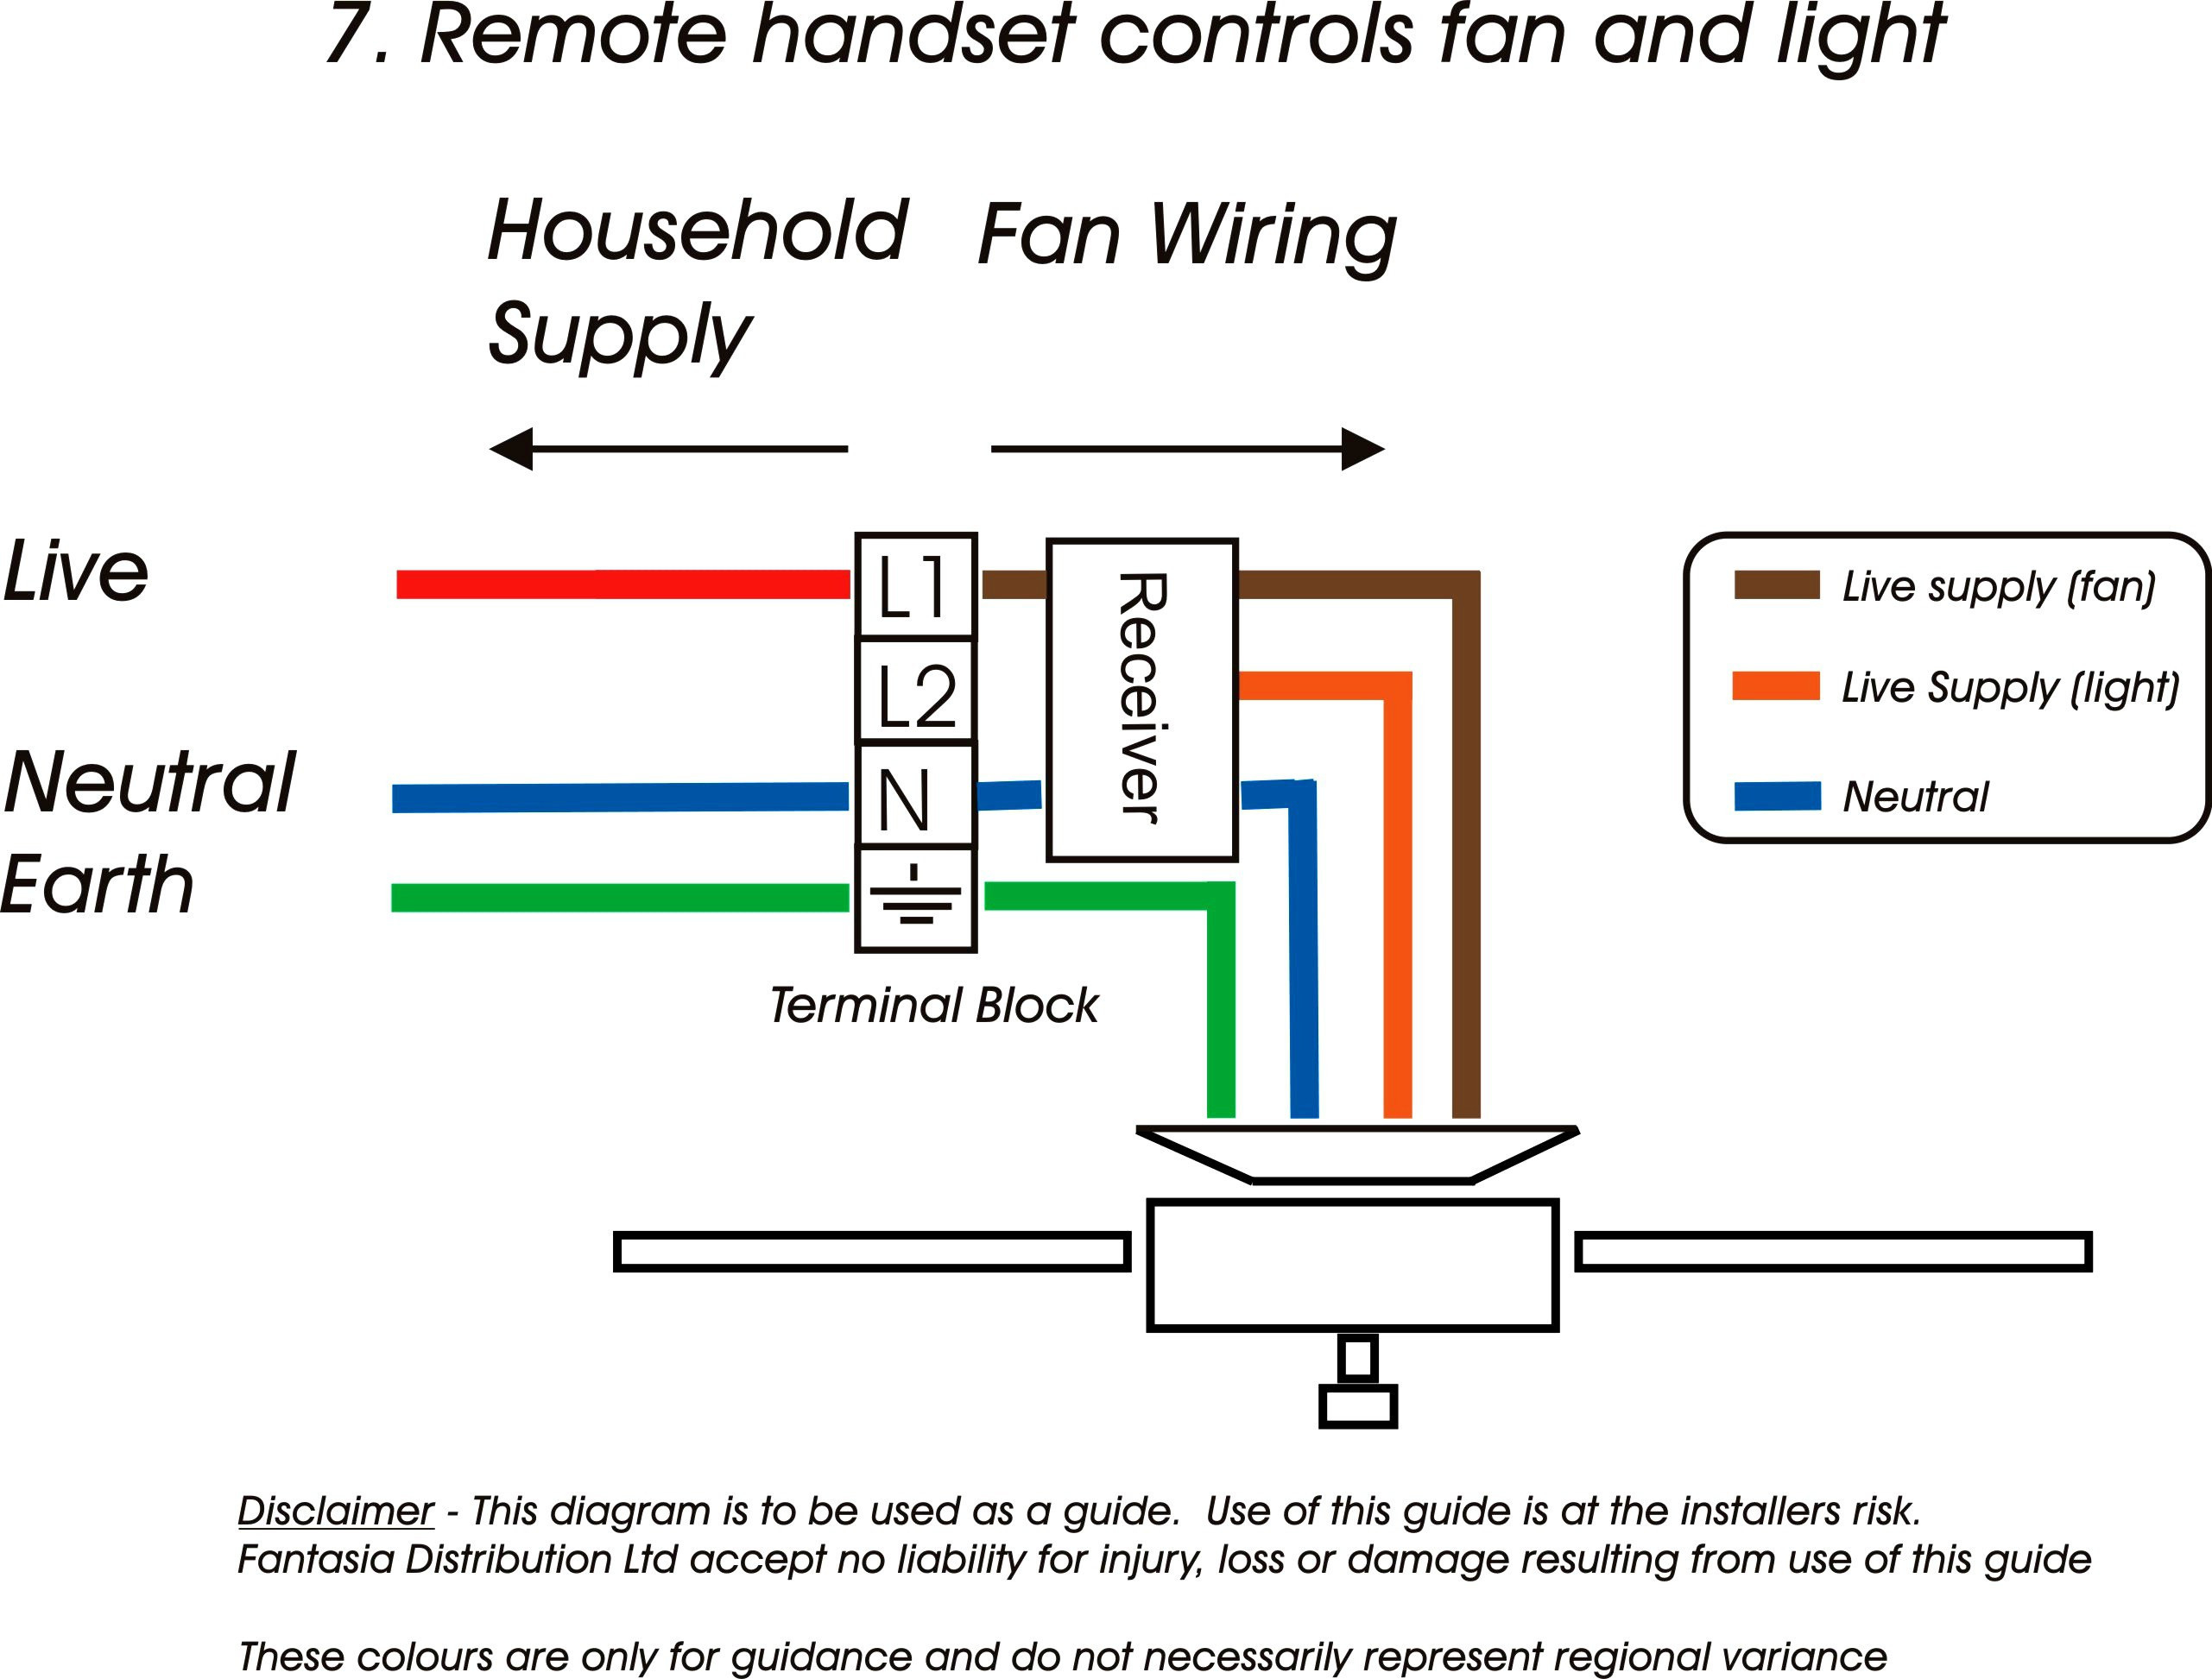 Westinghouse 3 Sd Fan Switch Wiring Diagram Download on pull switch light fixture, pull chain switch installation, pull chain fan switch diagram, pull string light and switch diagram, pull chain light wiring, 3 speed fan switch diagram, pull string light wiring diagram, pull switch parts lowe, pull chord switch wiring 4 wire, pull chain switches for lamps, ceiling fan pull switch diagram, pull light chain electric,